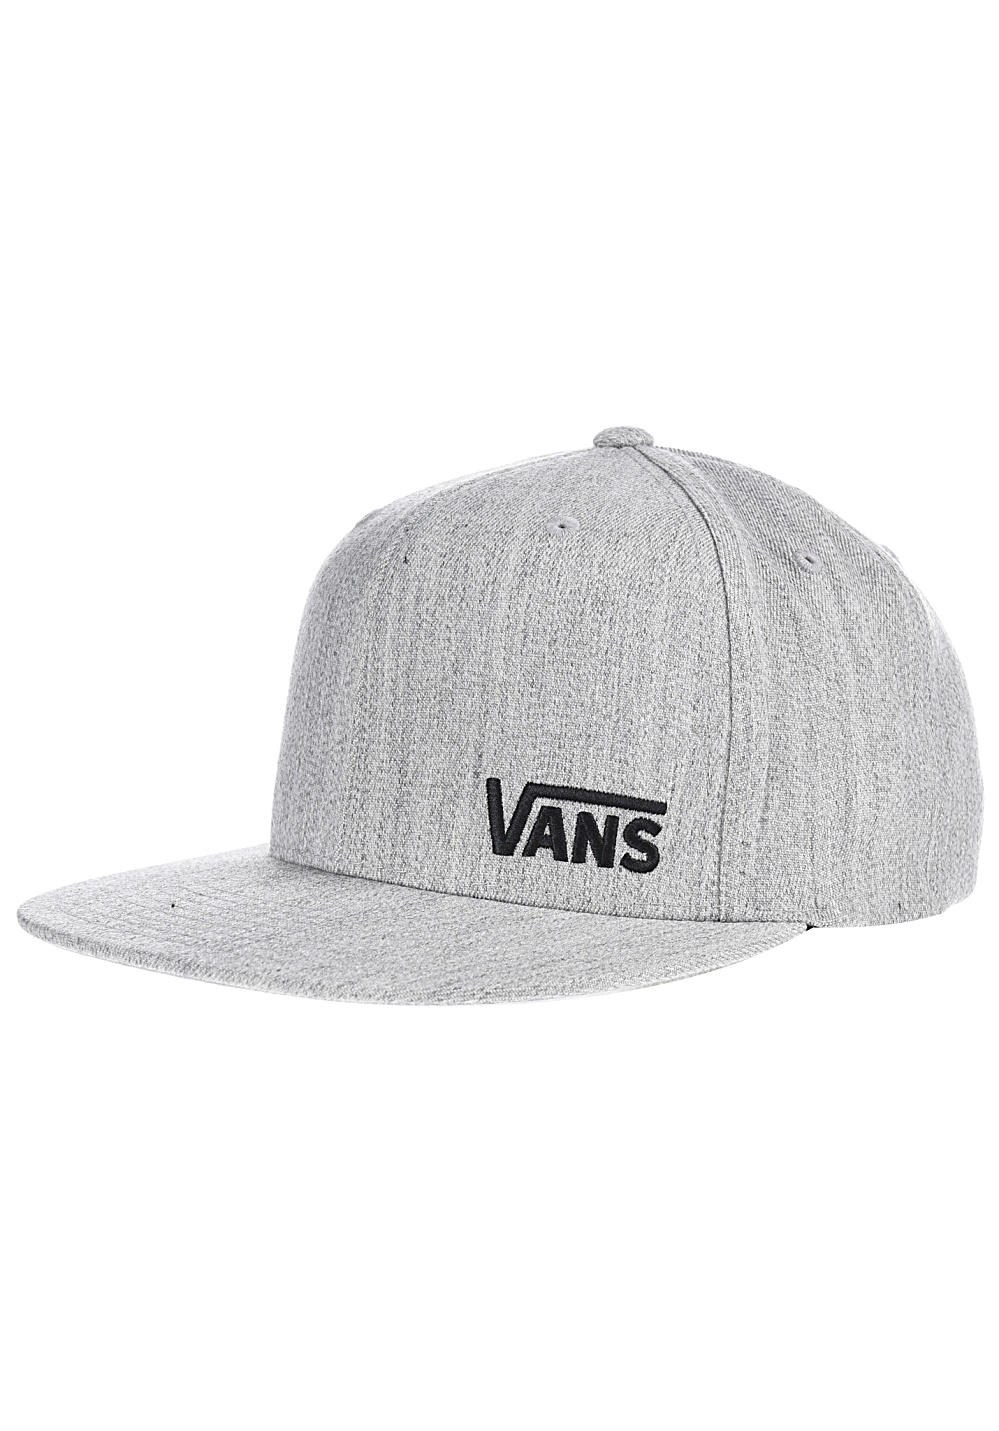 a397253b5cf Next. This product is currently out of stock. Vans. Splitz - Cap for Men